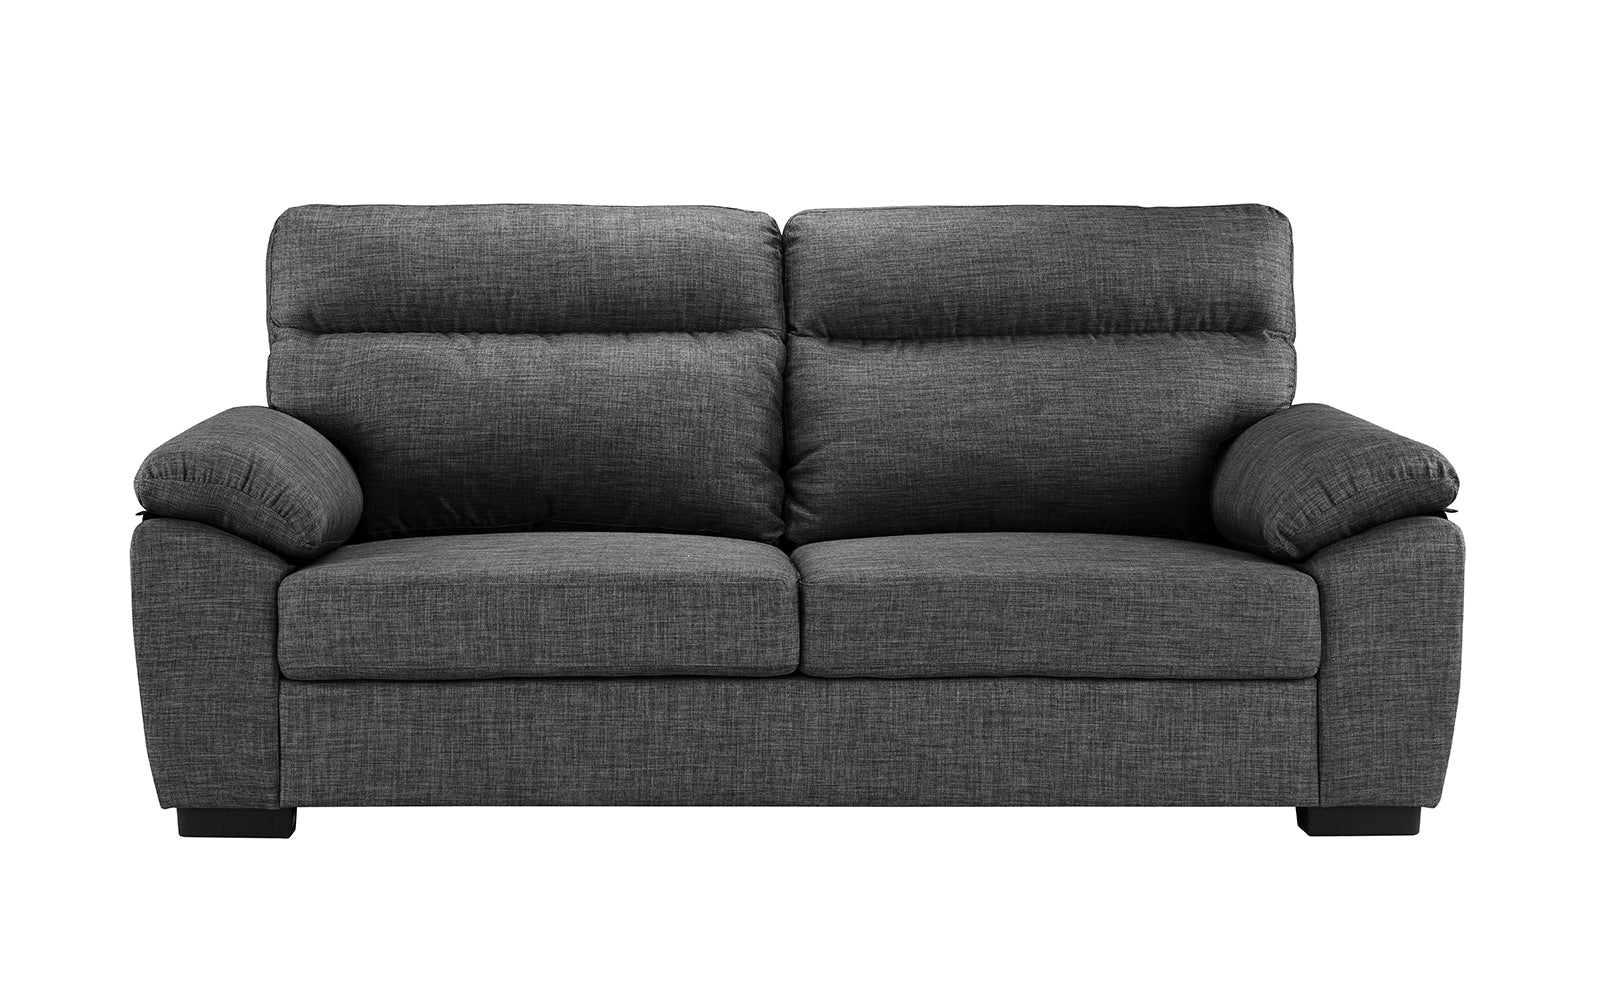 Luca Modern Linen Sofa And Loveseat Set Sofamania Com ~ Grey Sofa And Loveseat Sets